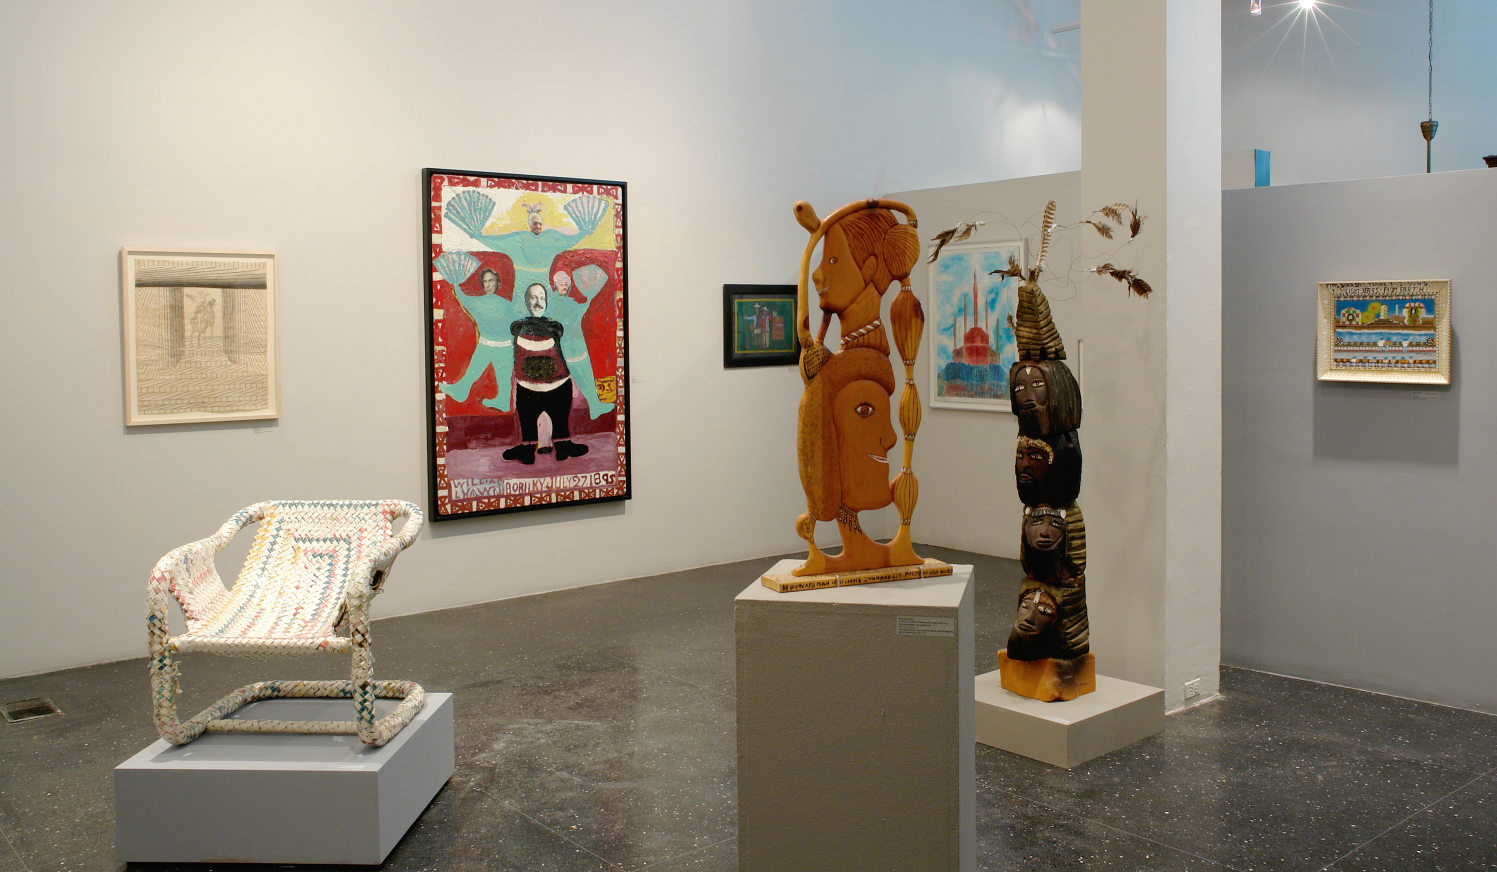 View of installation featuring sculptures in foreground and paintings and drawings on gallery walls